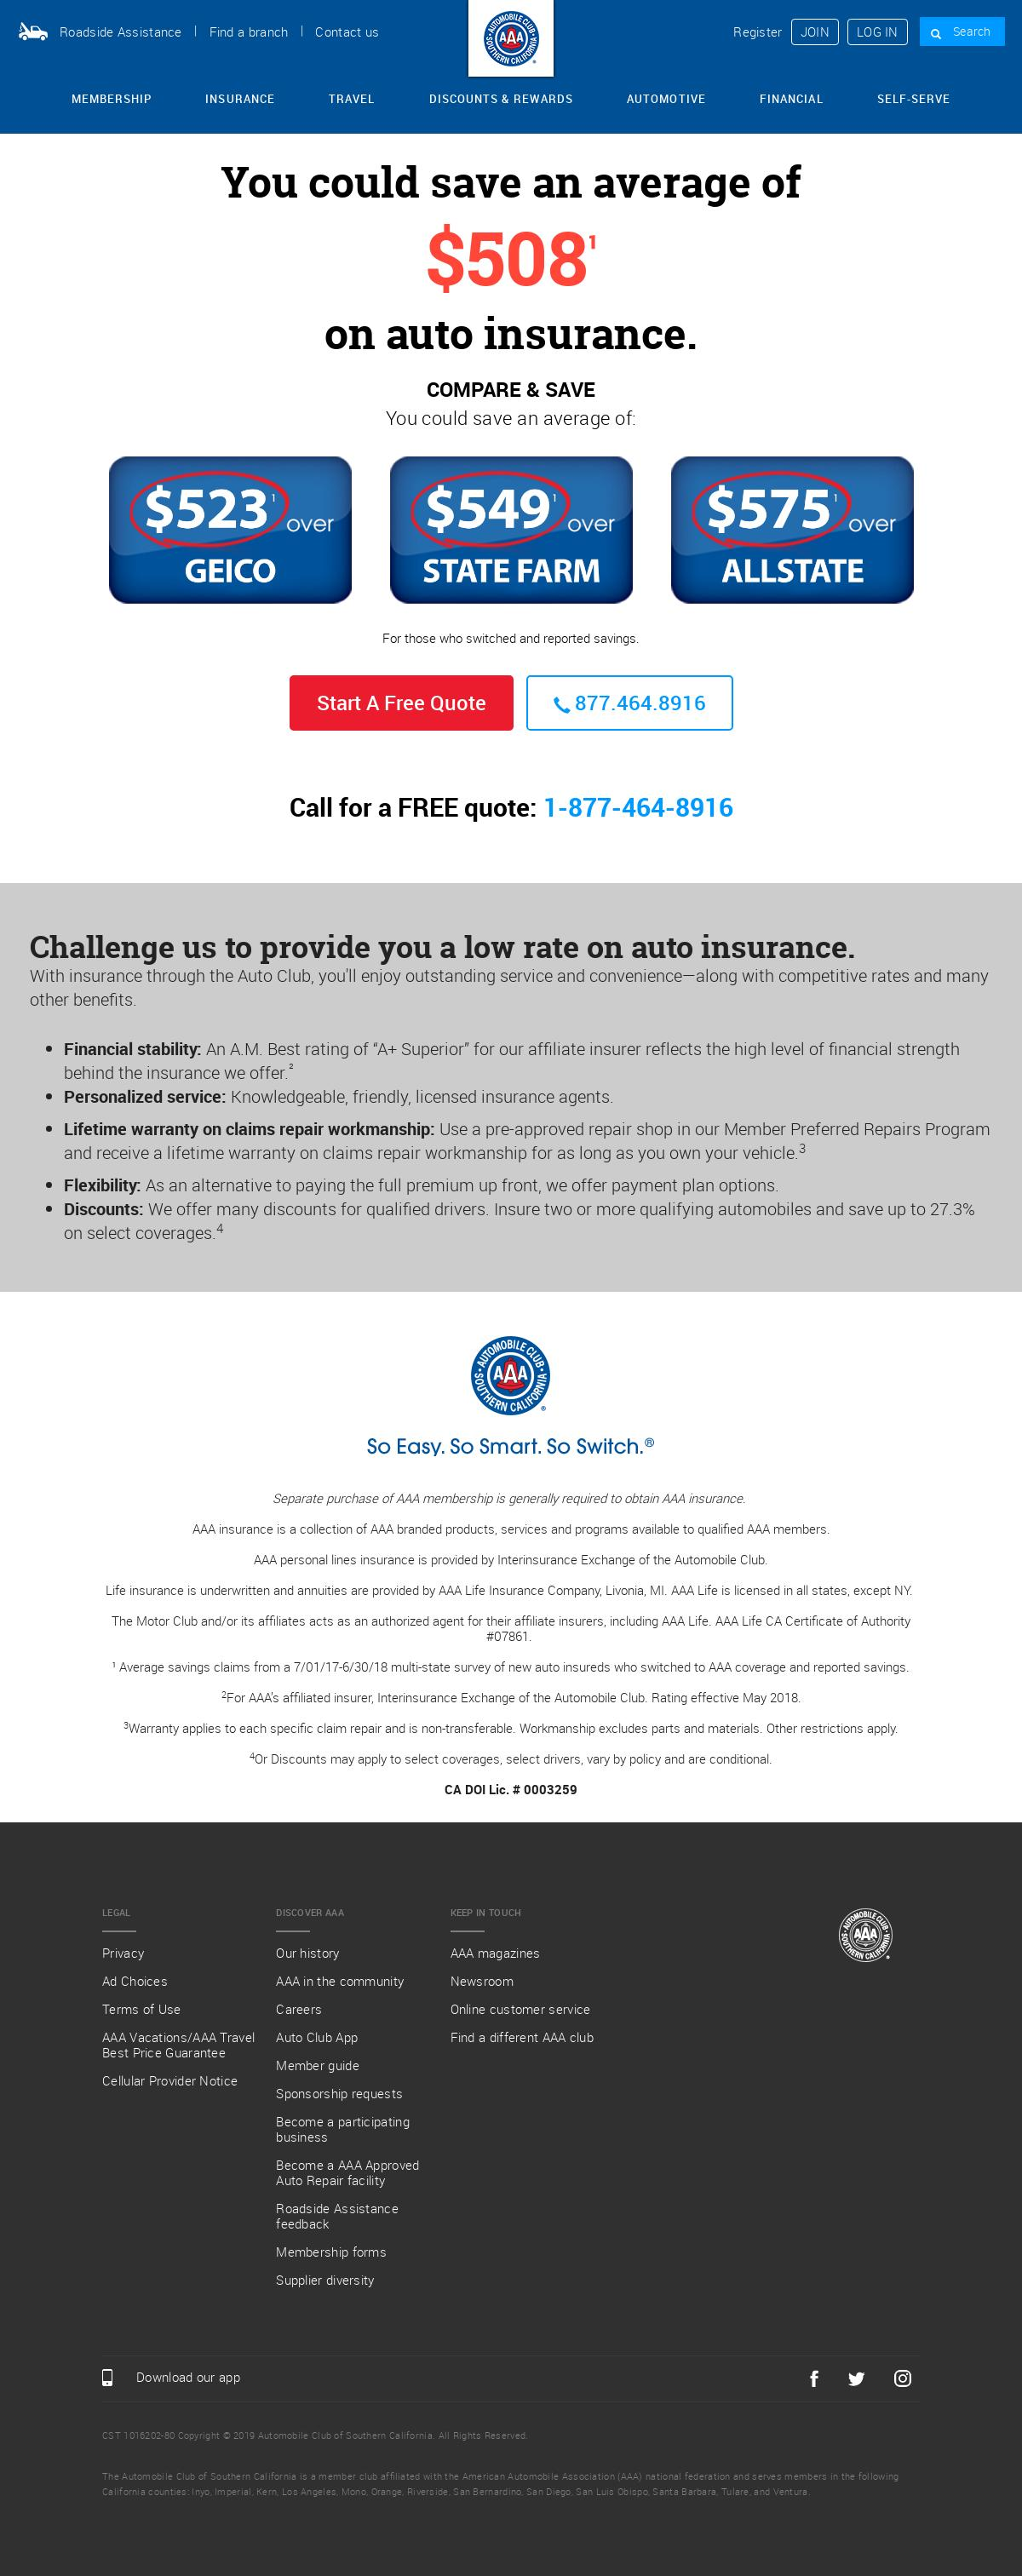 calif aaa com Landing Page Design for Insurance / Car insurance